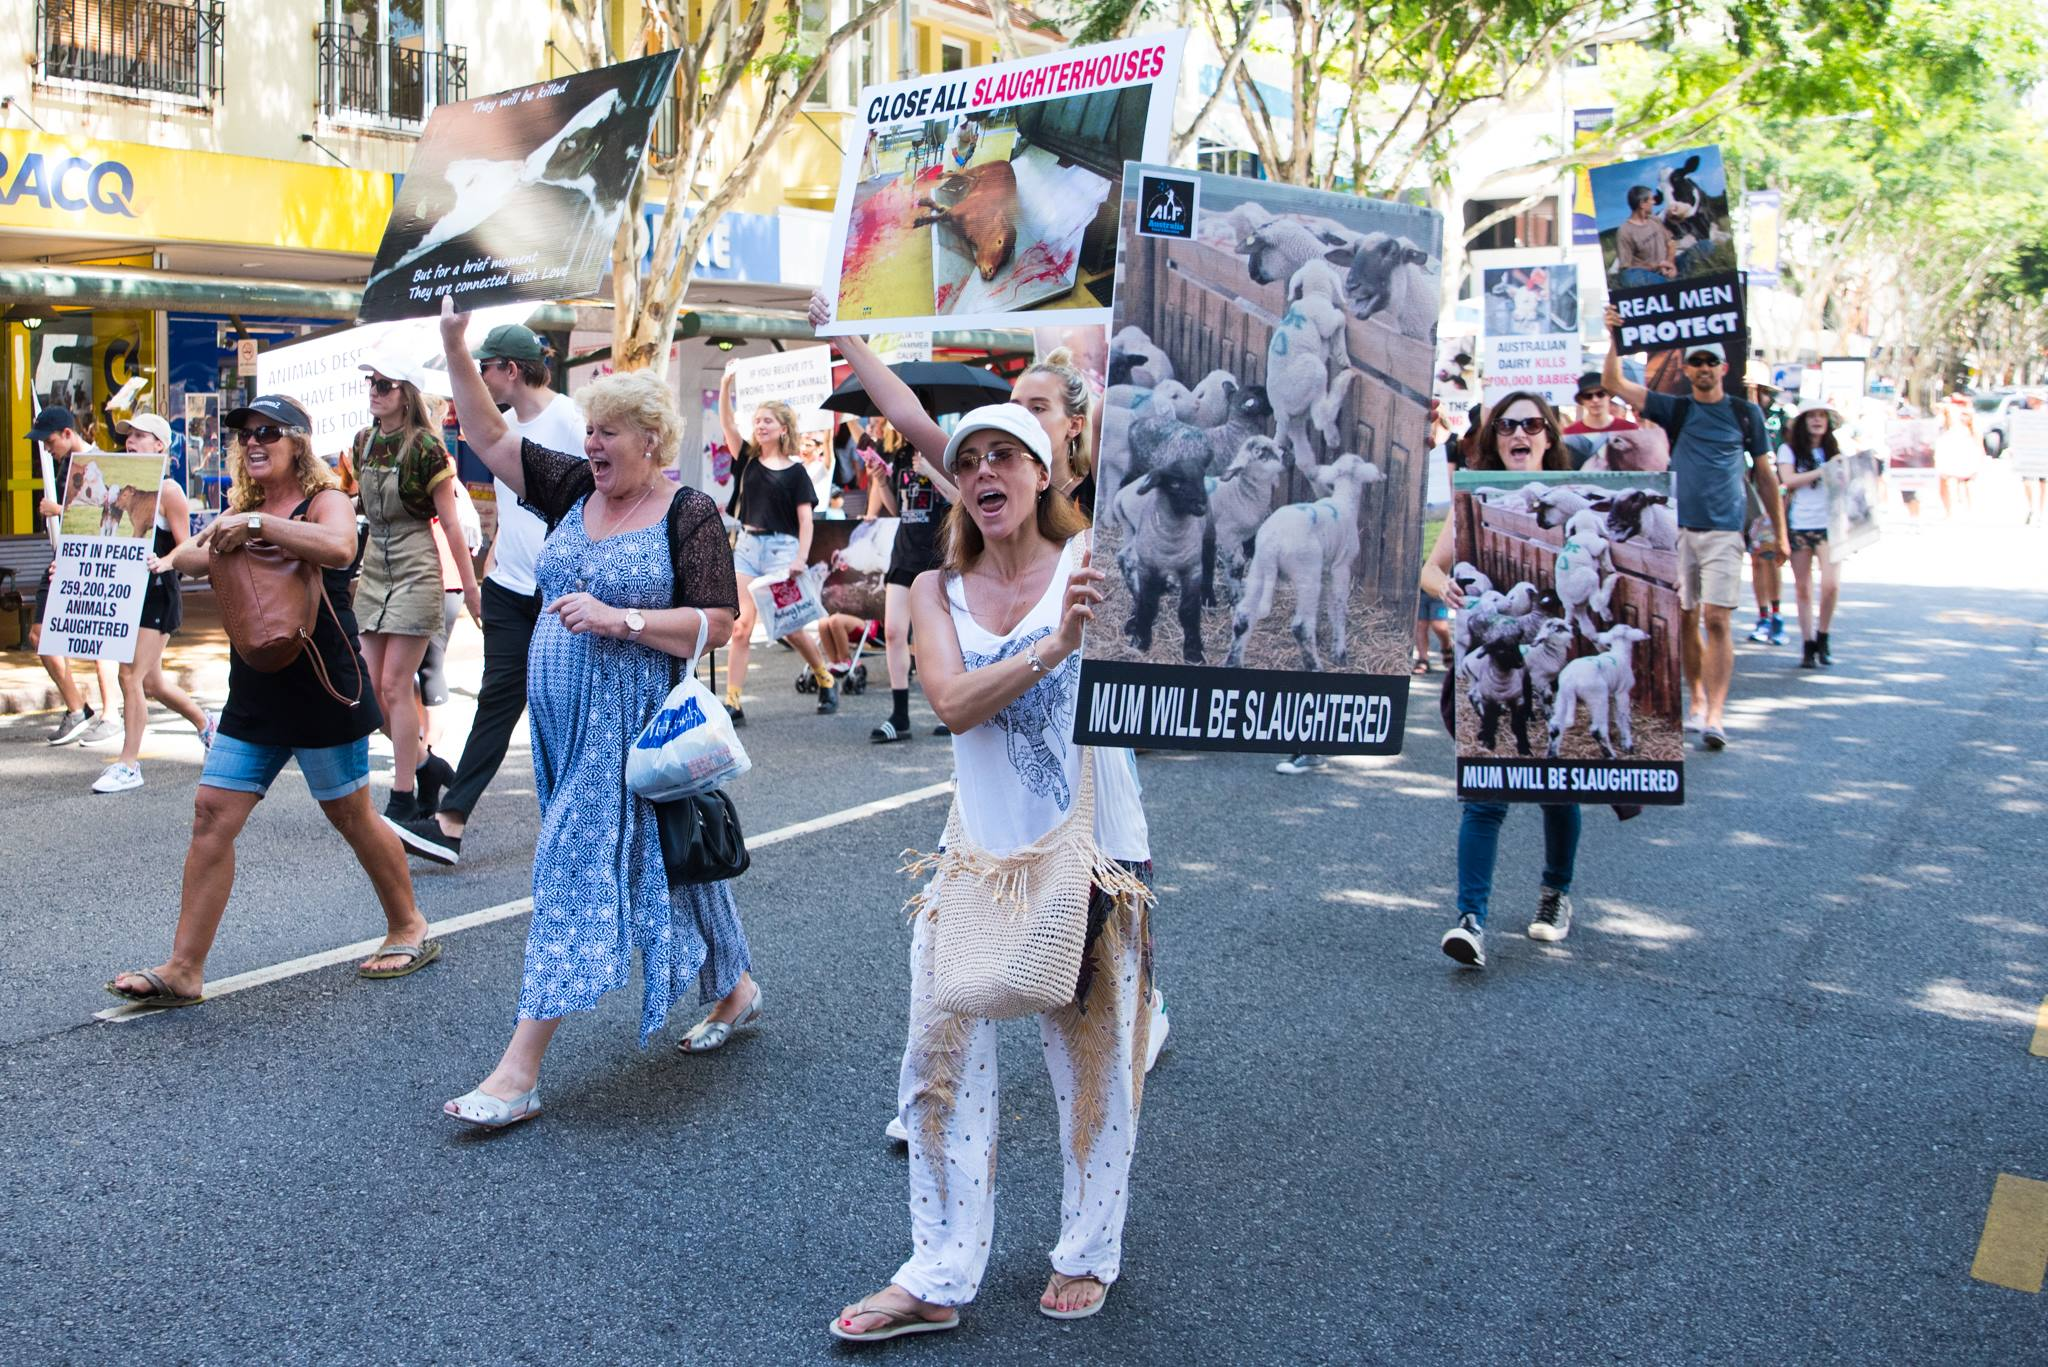 Brisbane March To Close All Slaughterhouses 2017 picture